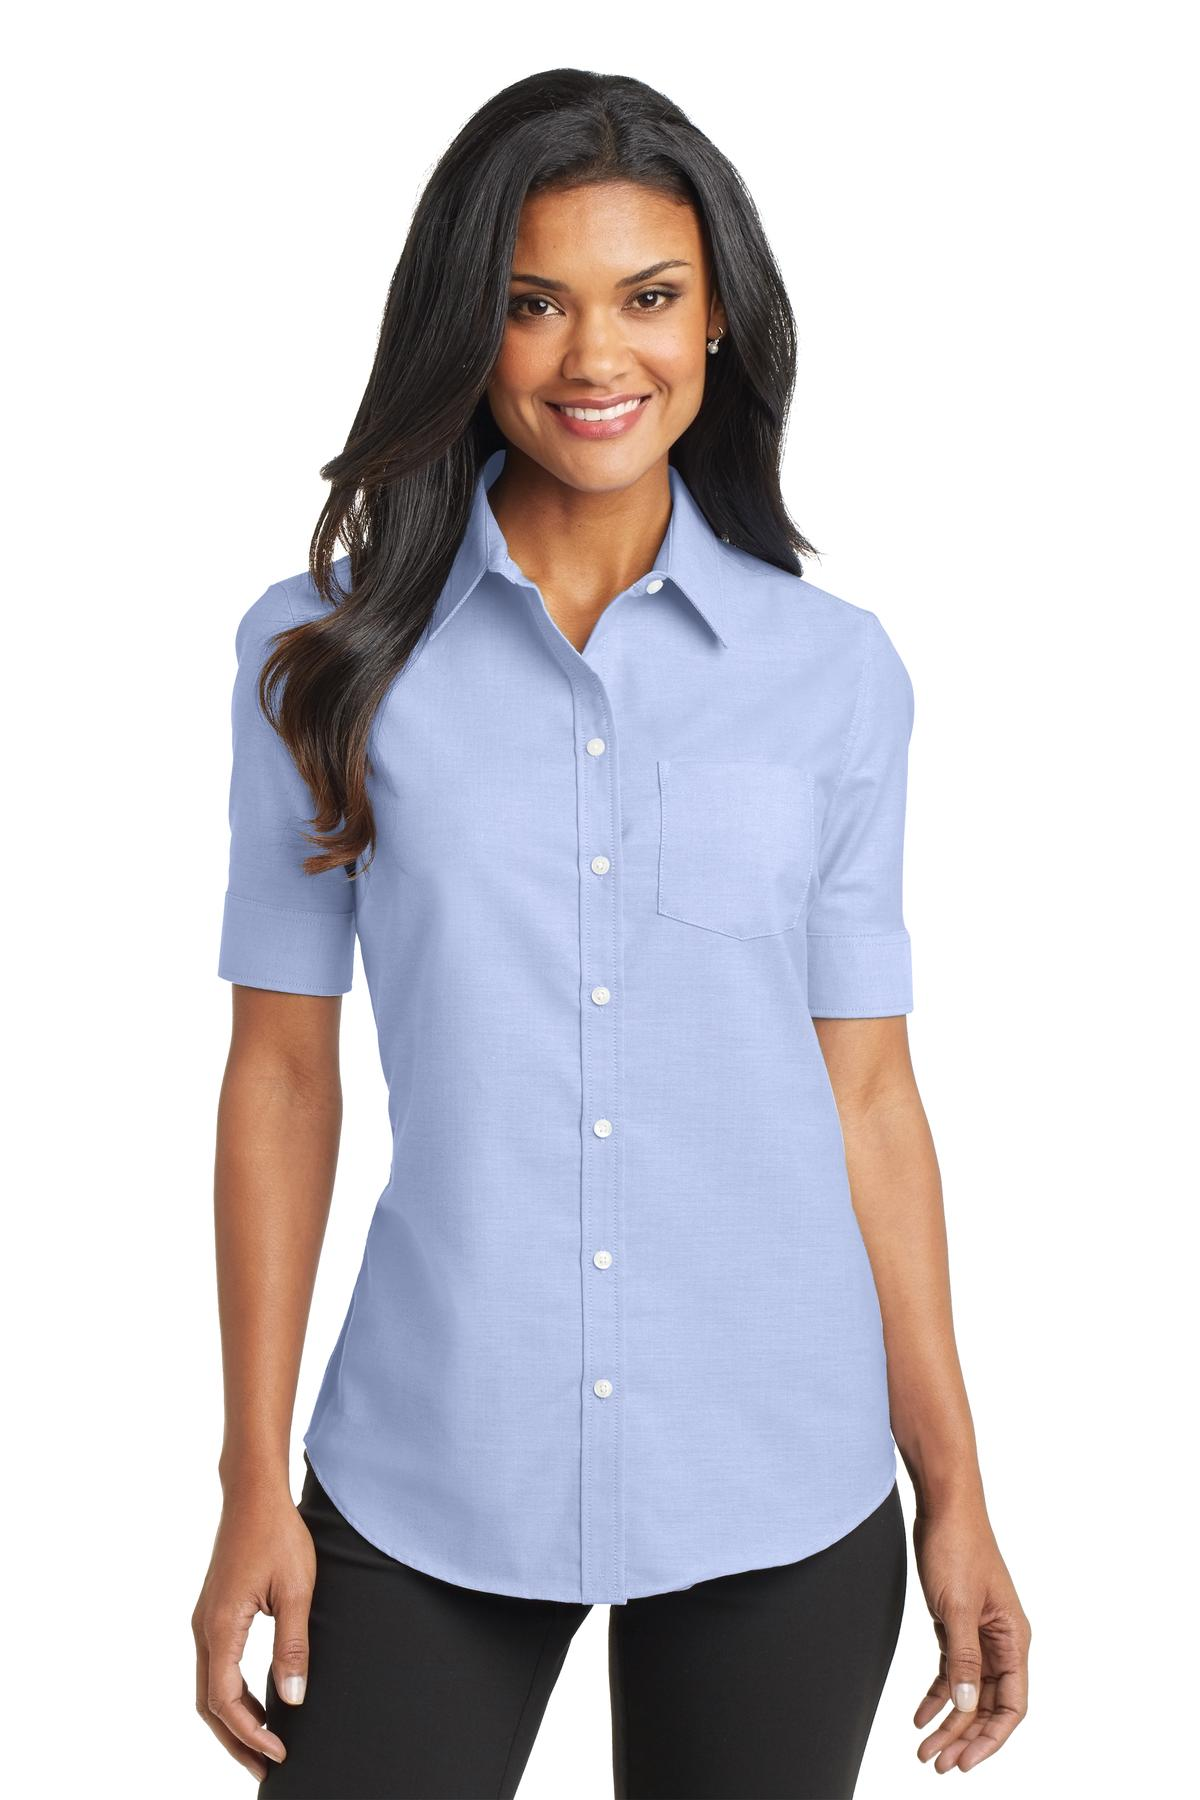 port authority women 39 s short sleeve superpro oxford shirt